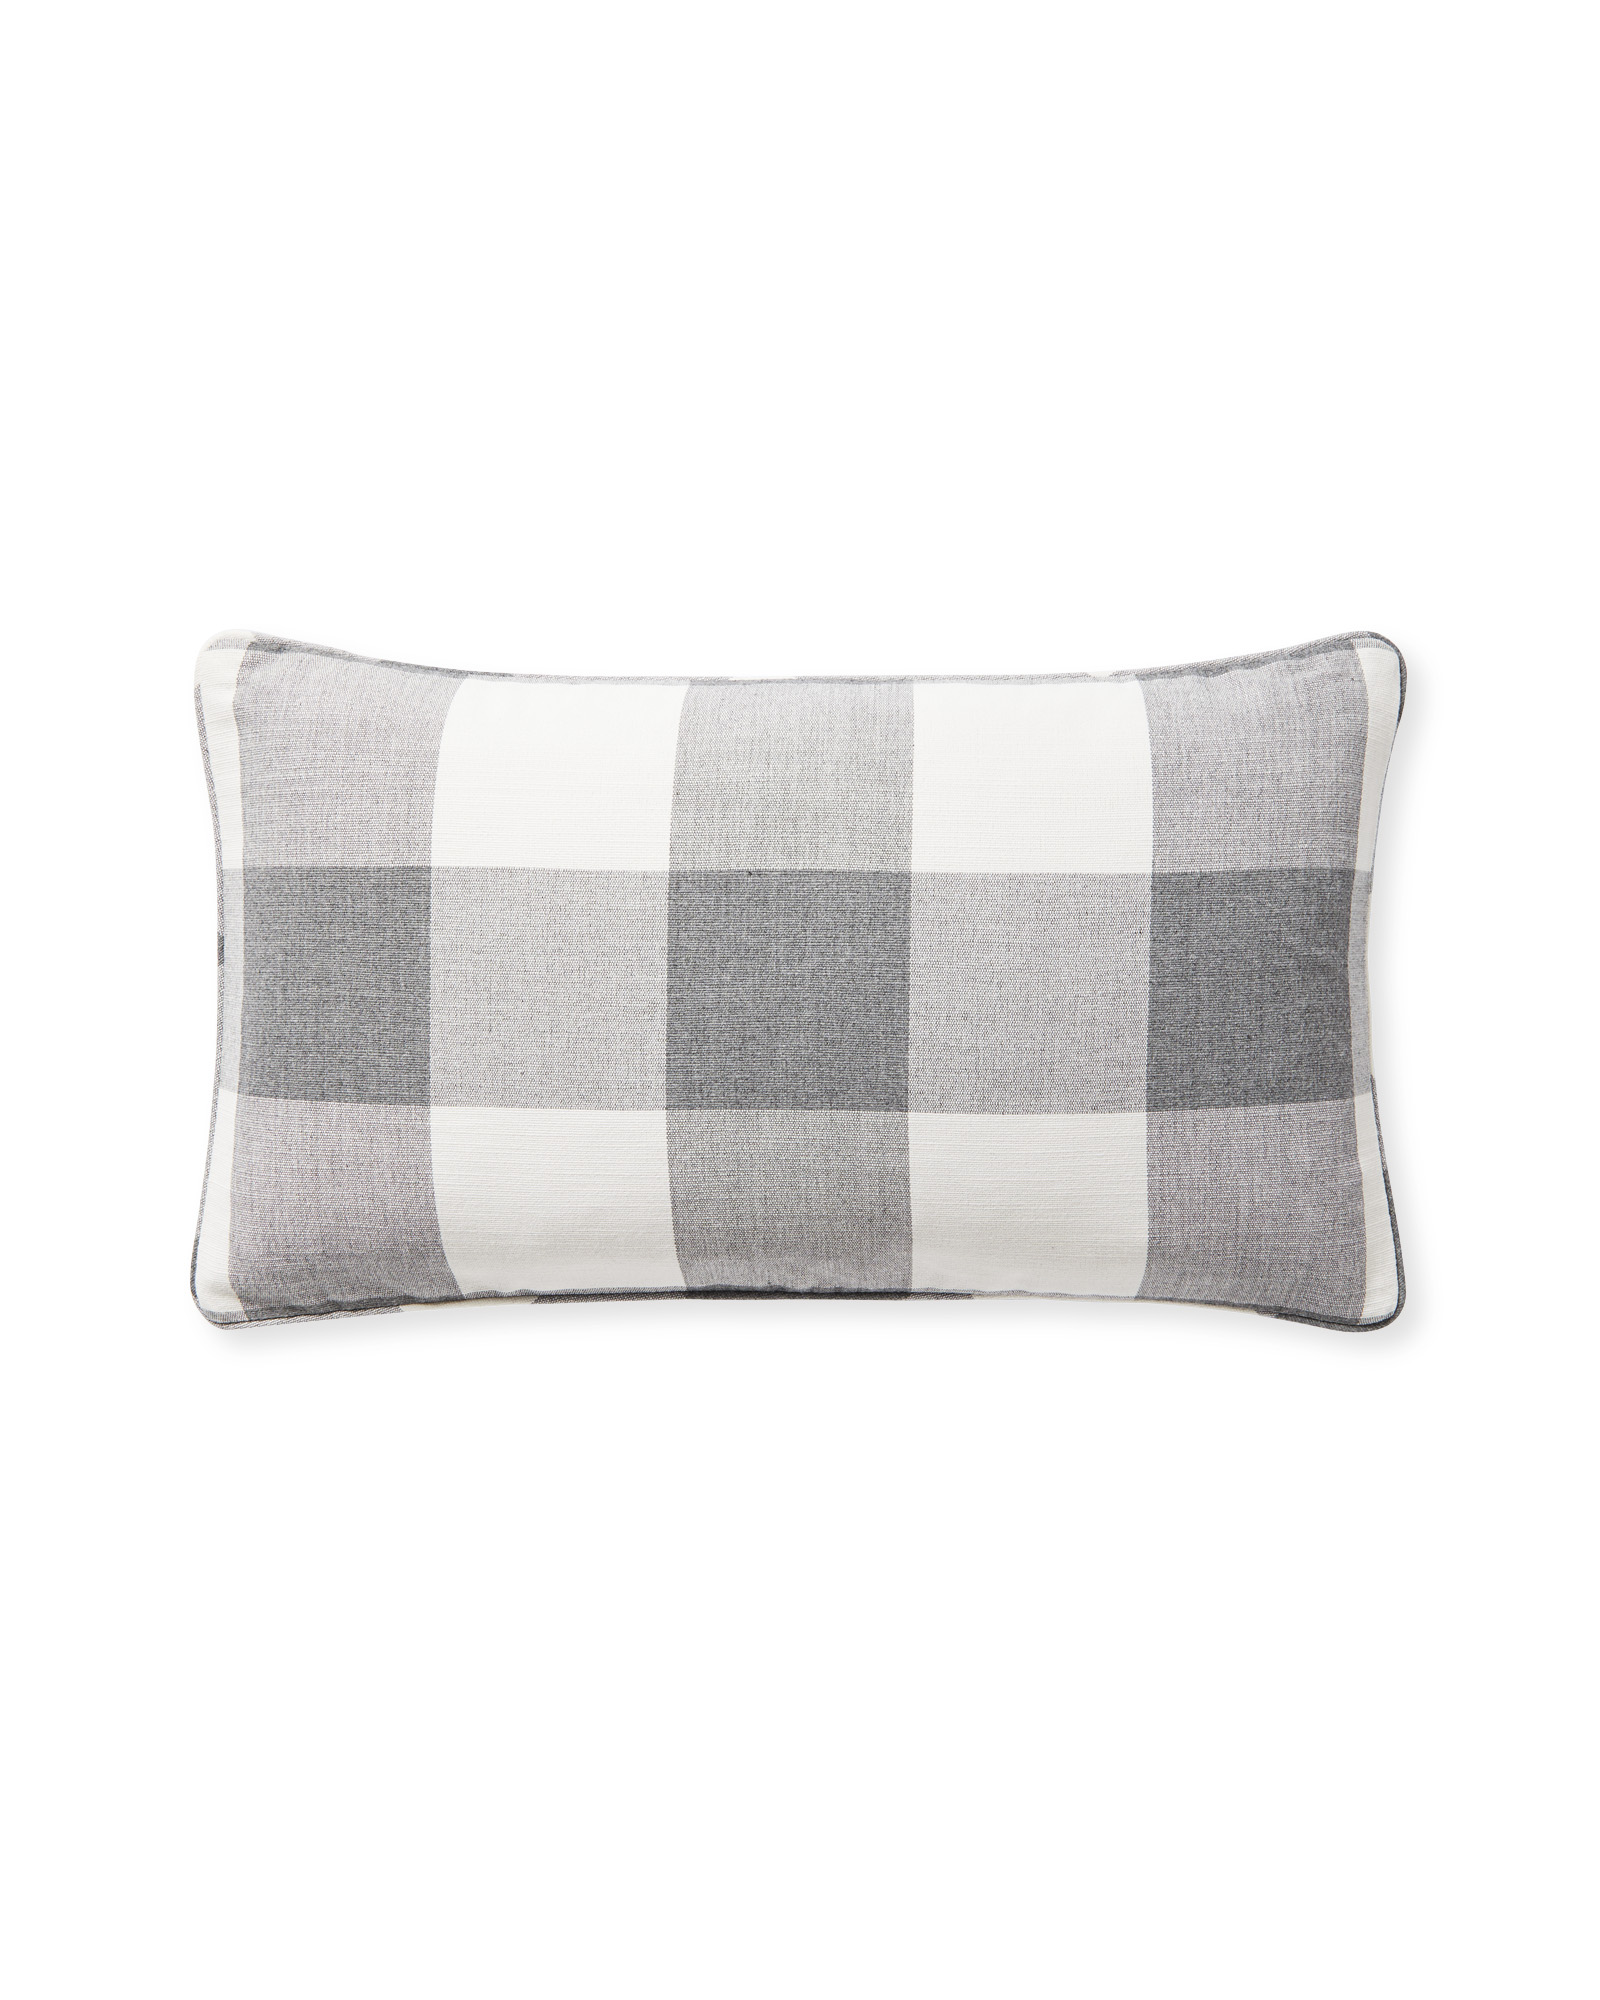 Perennials® Gingham Pillow Cover, Smoke